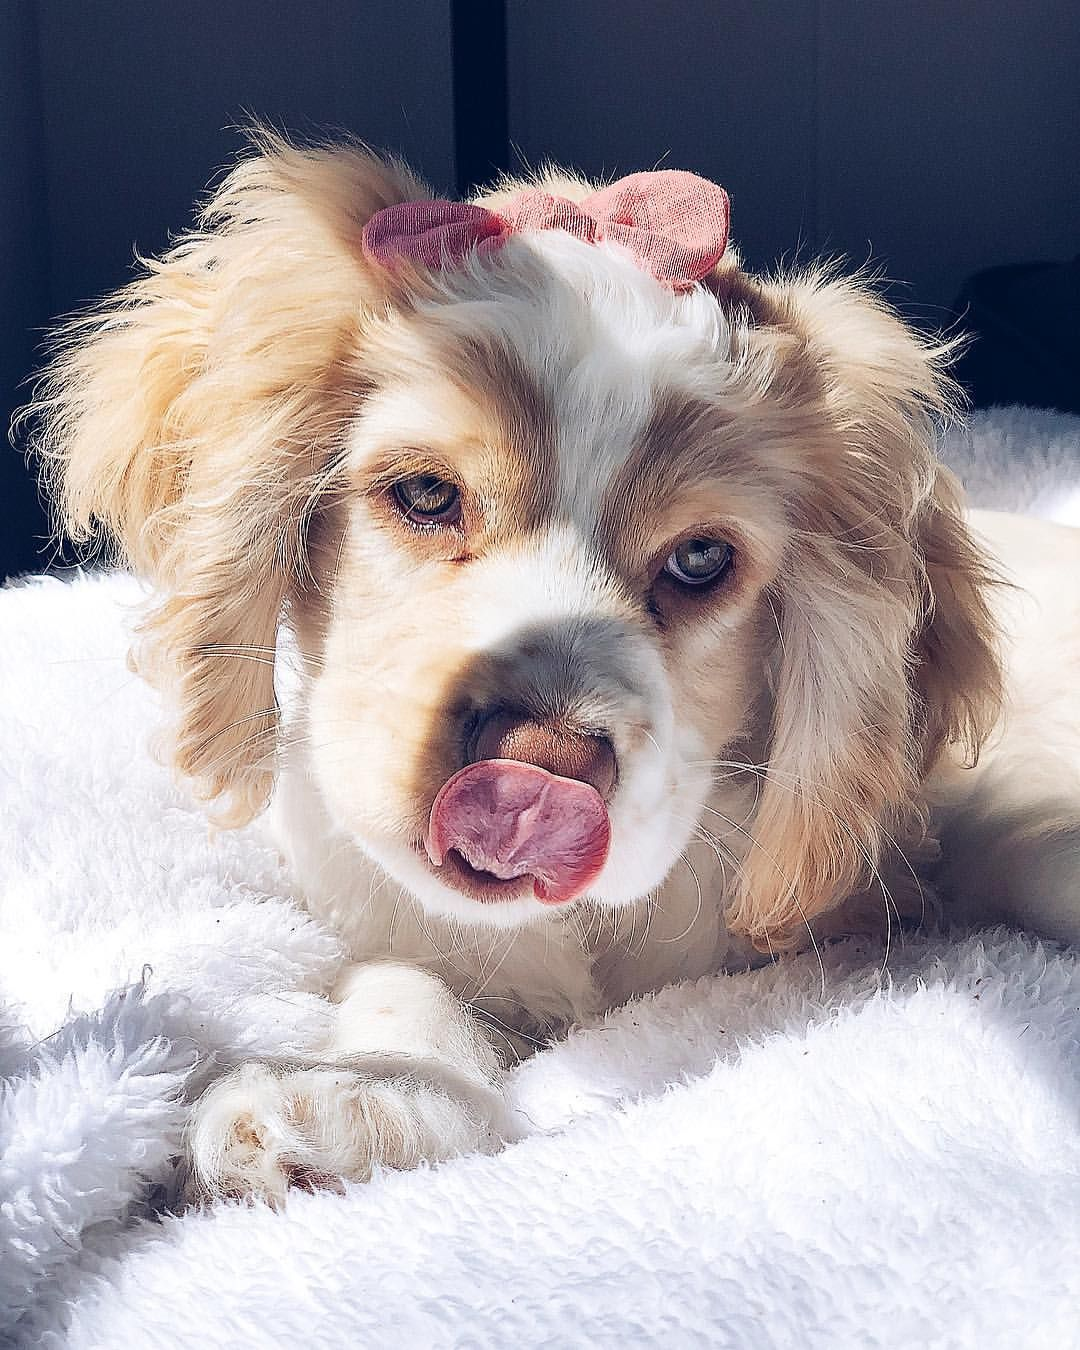 Coffee And More Coffee Please Cocker Spaniel Puppy Cute Cute Baby Animals Animals Beautiful Cute Animals